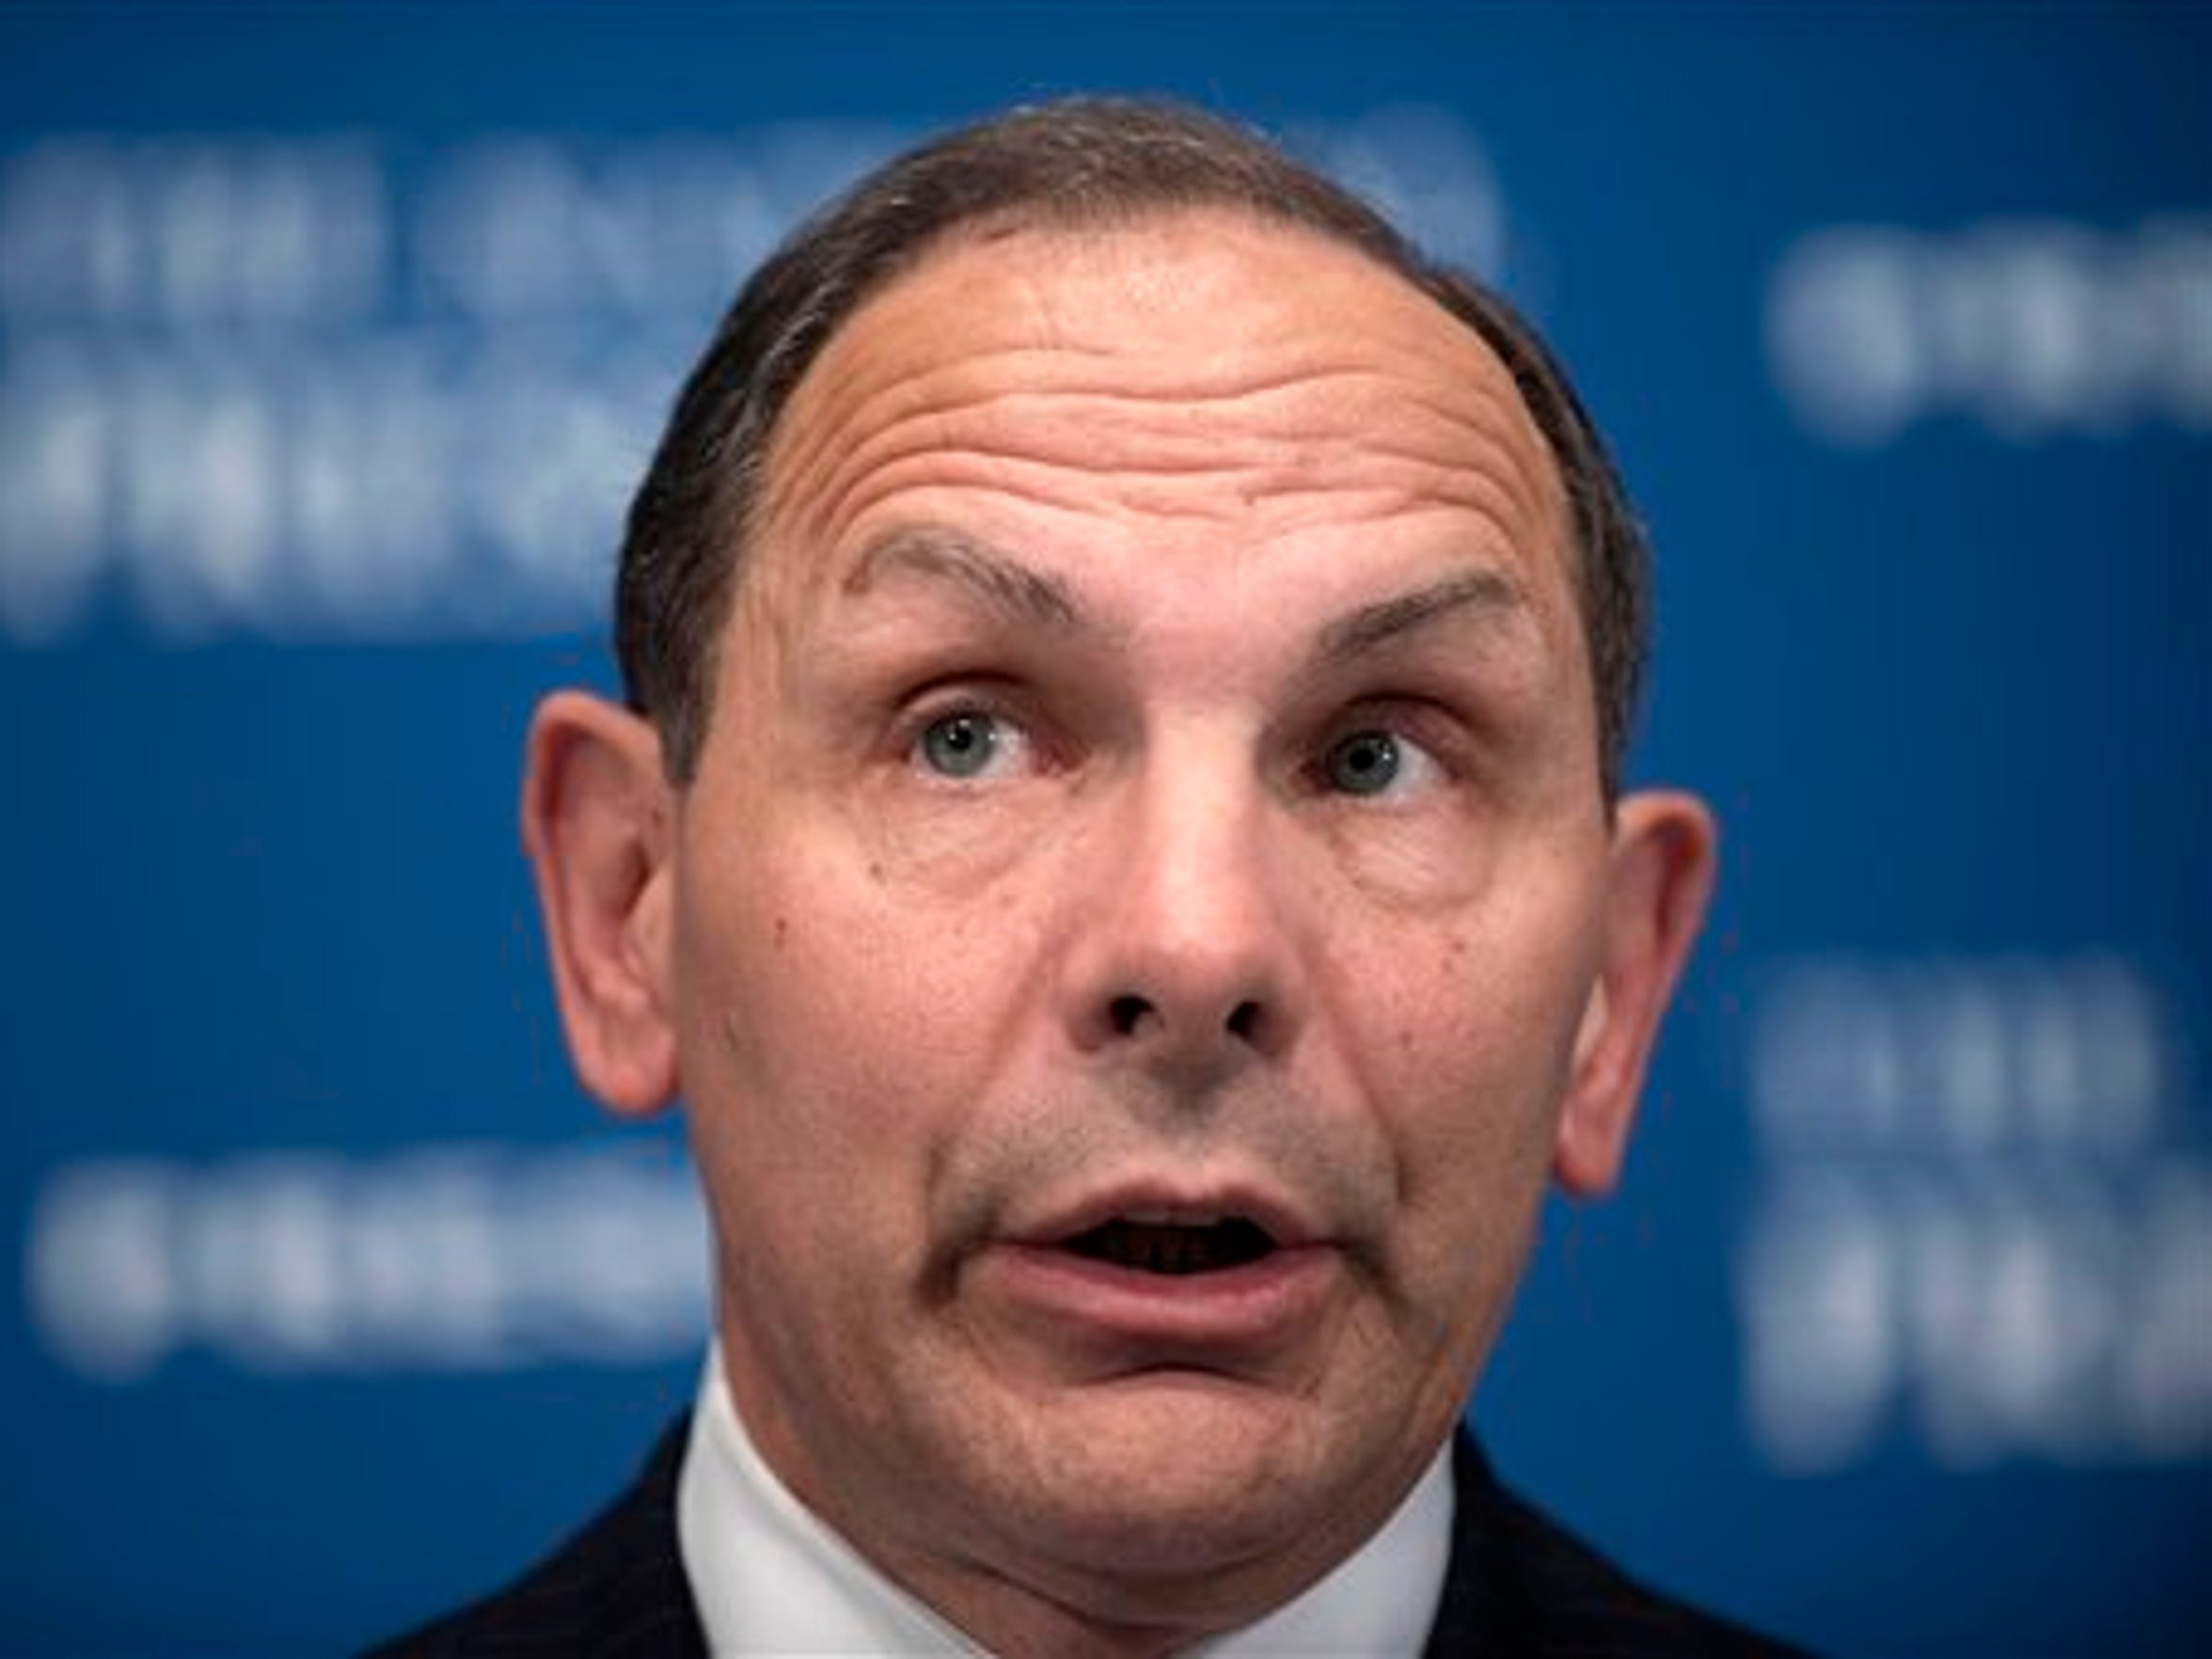 Veterans Affairs Secretary Robert McDonald talks about the state of the Veteran Affairs Department while speaking at a luncheon at the National Press Club in Washington Friday, Nov. 6, 2015.